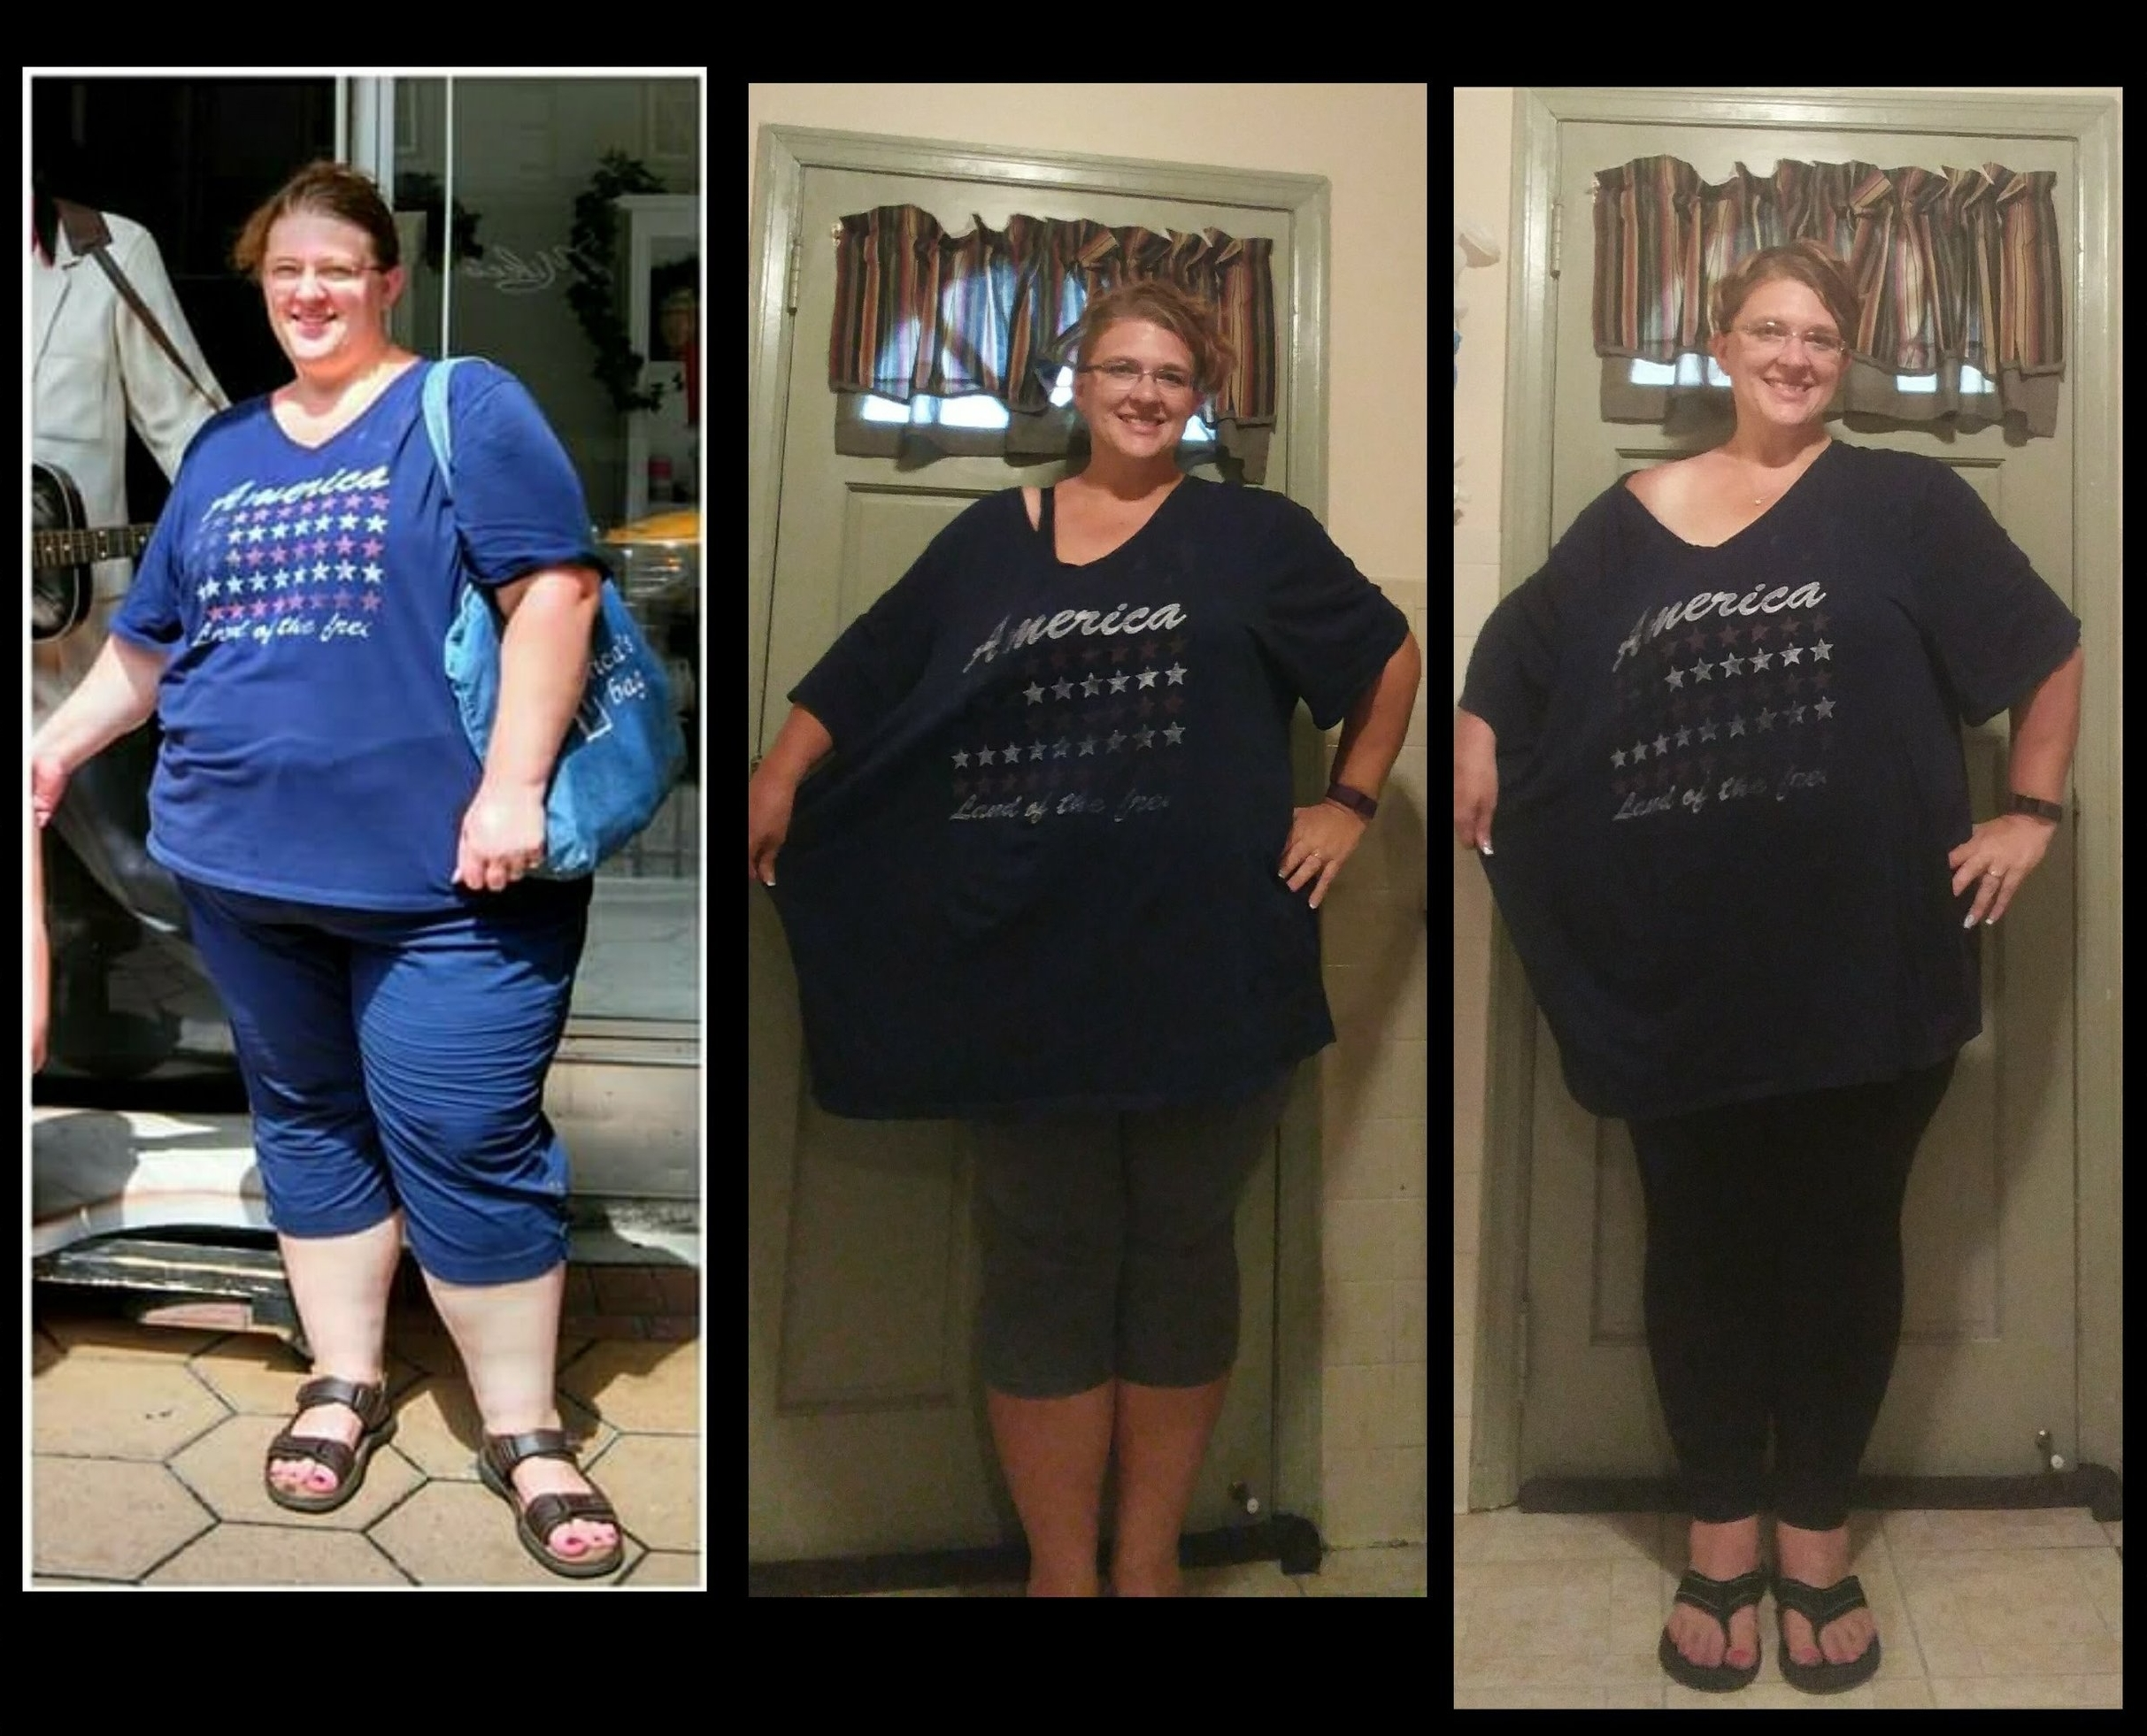 over 100 pounds lighter than where she began